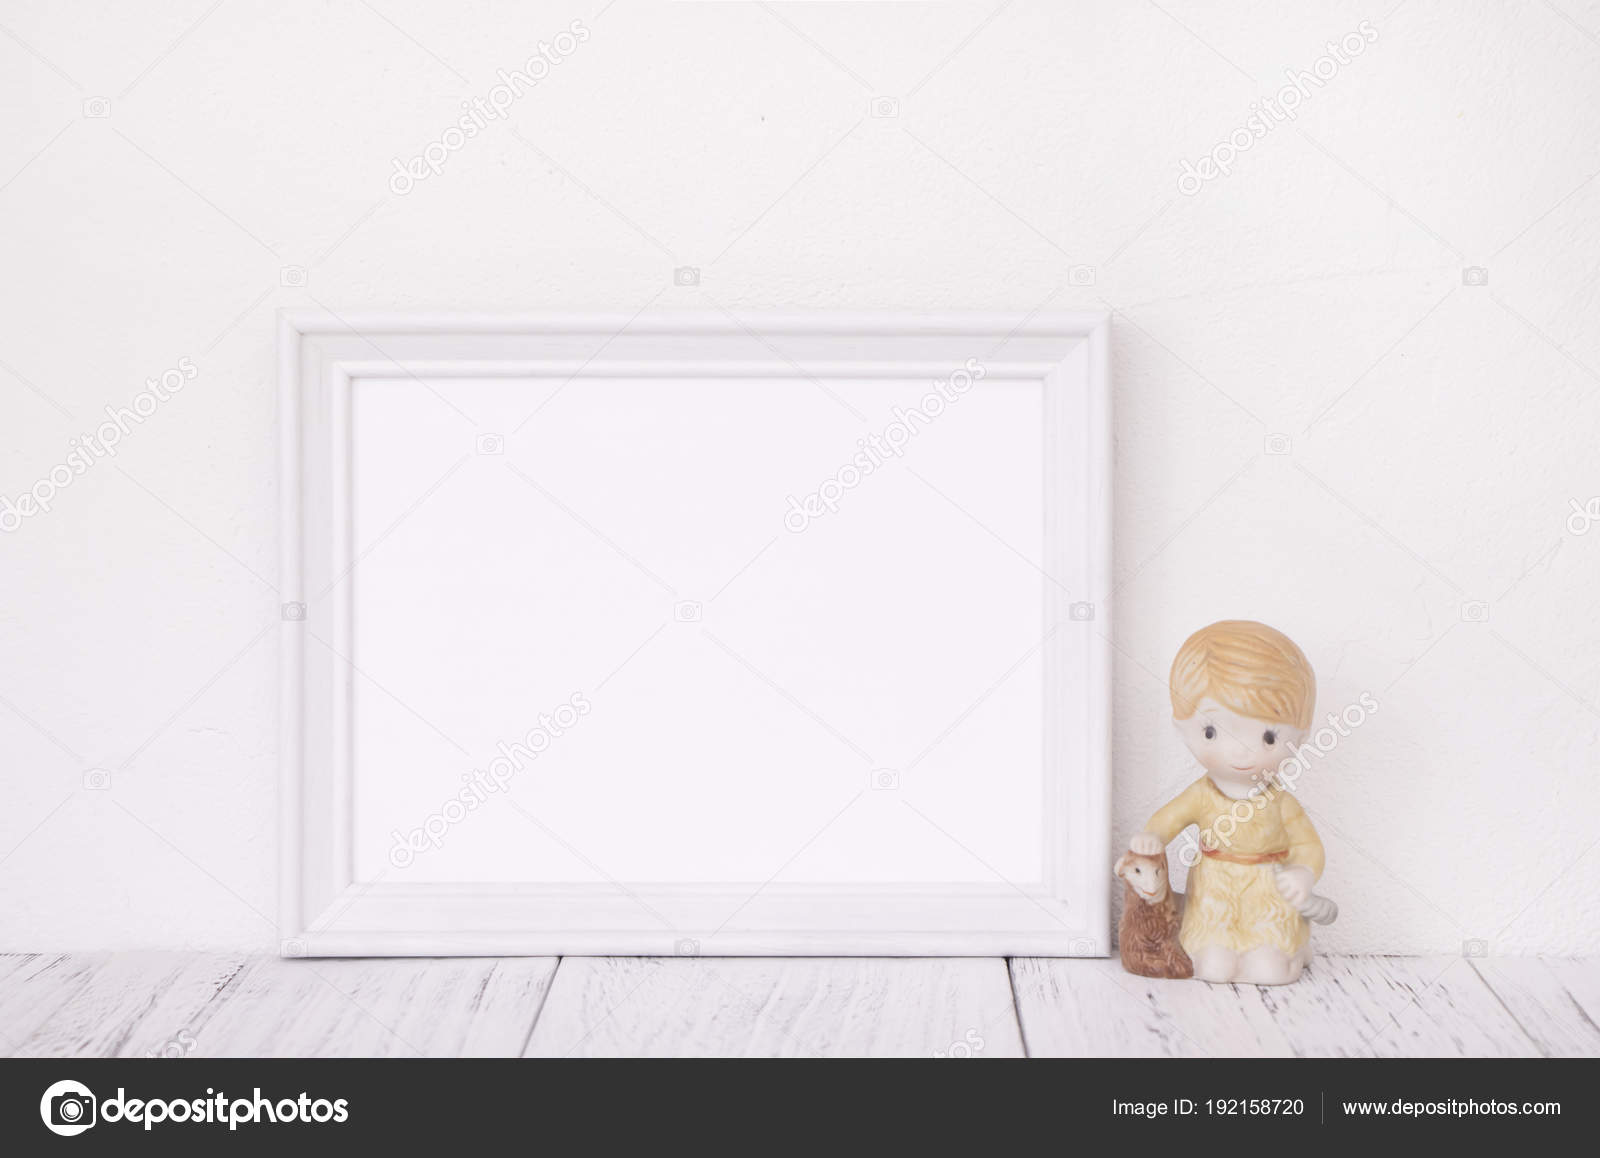 Stock photography of retro white frame template vintage wood tab ...